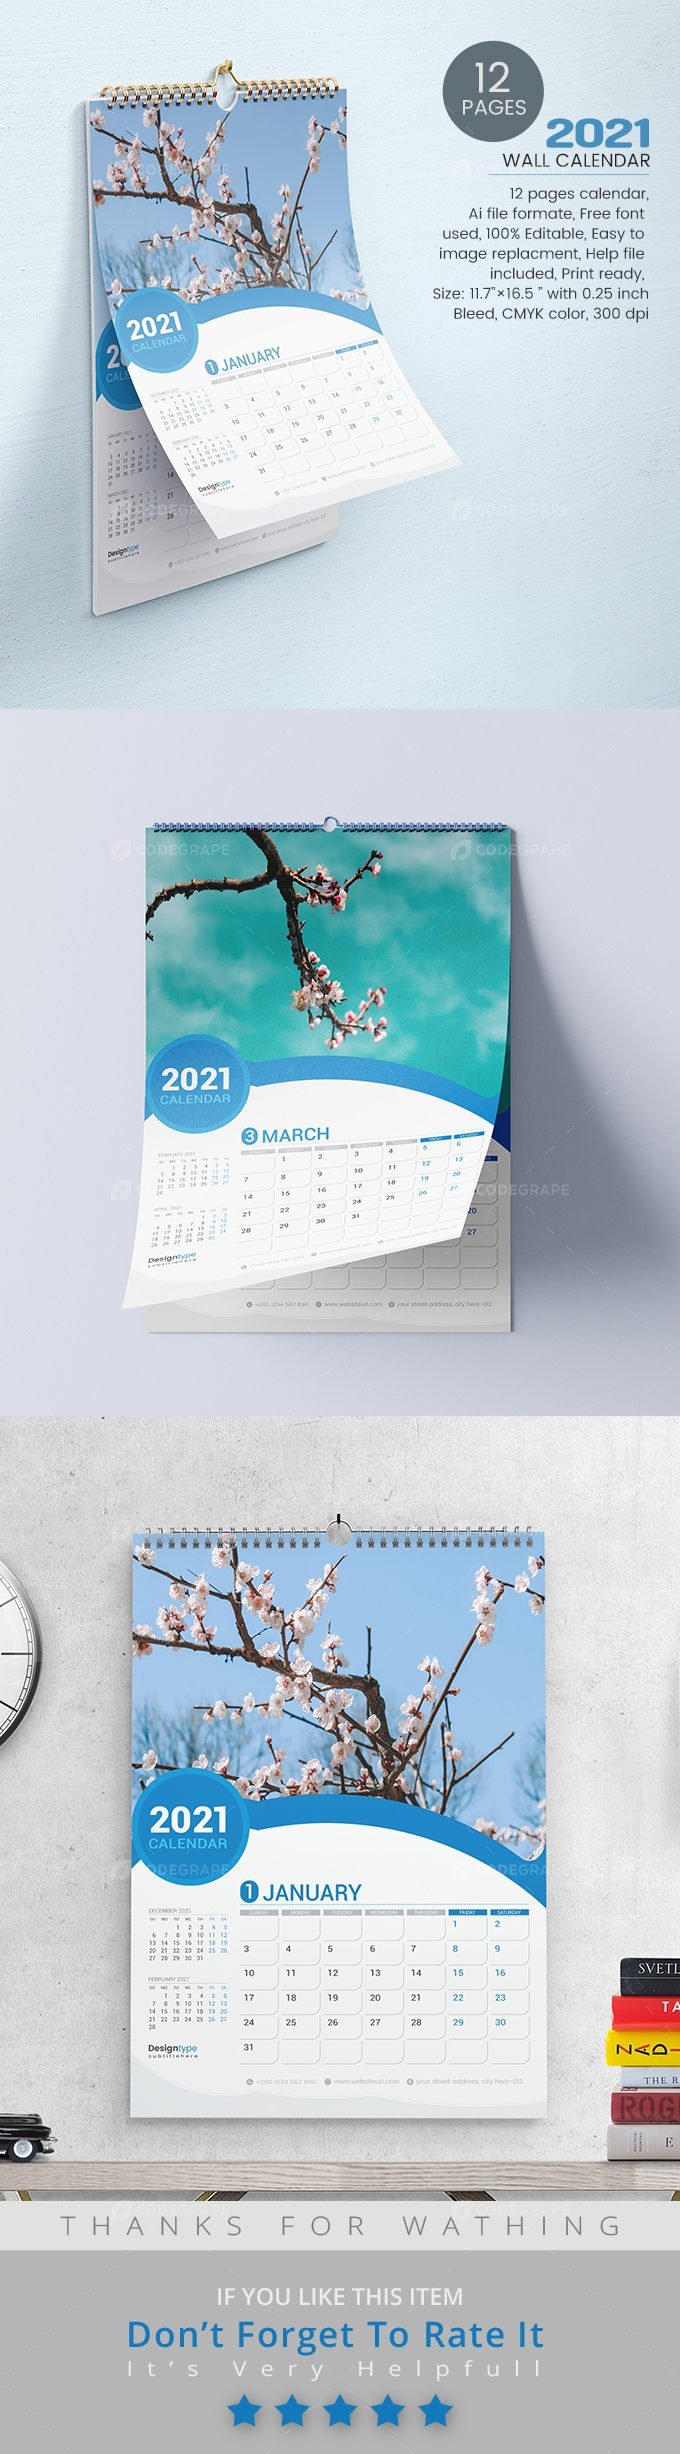 Twelve Pages Wall Calendar Template 2021